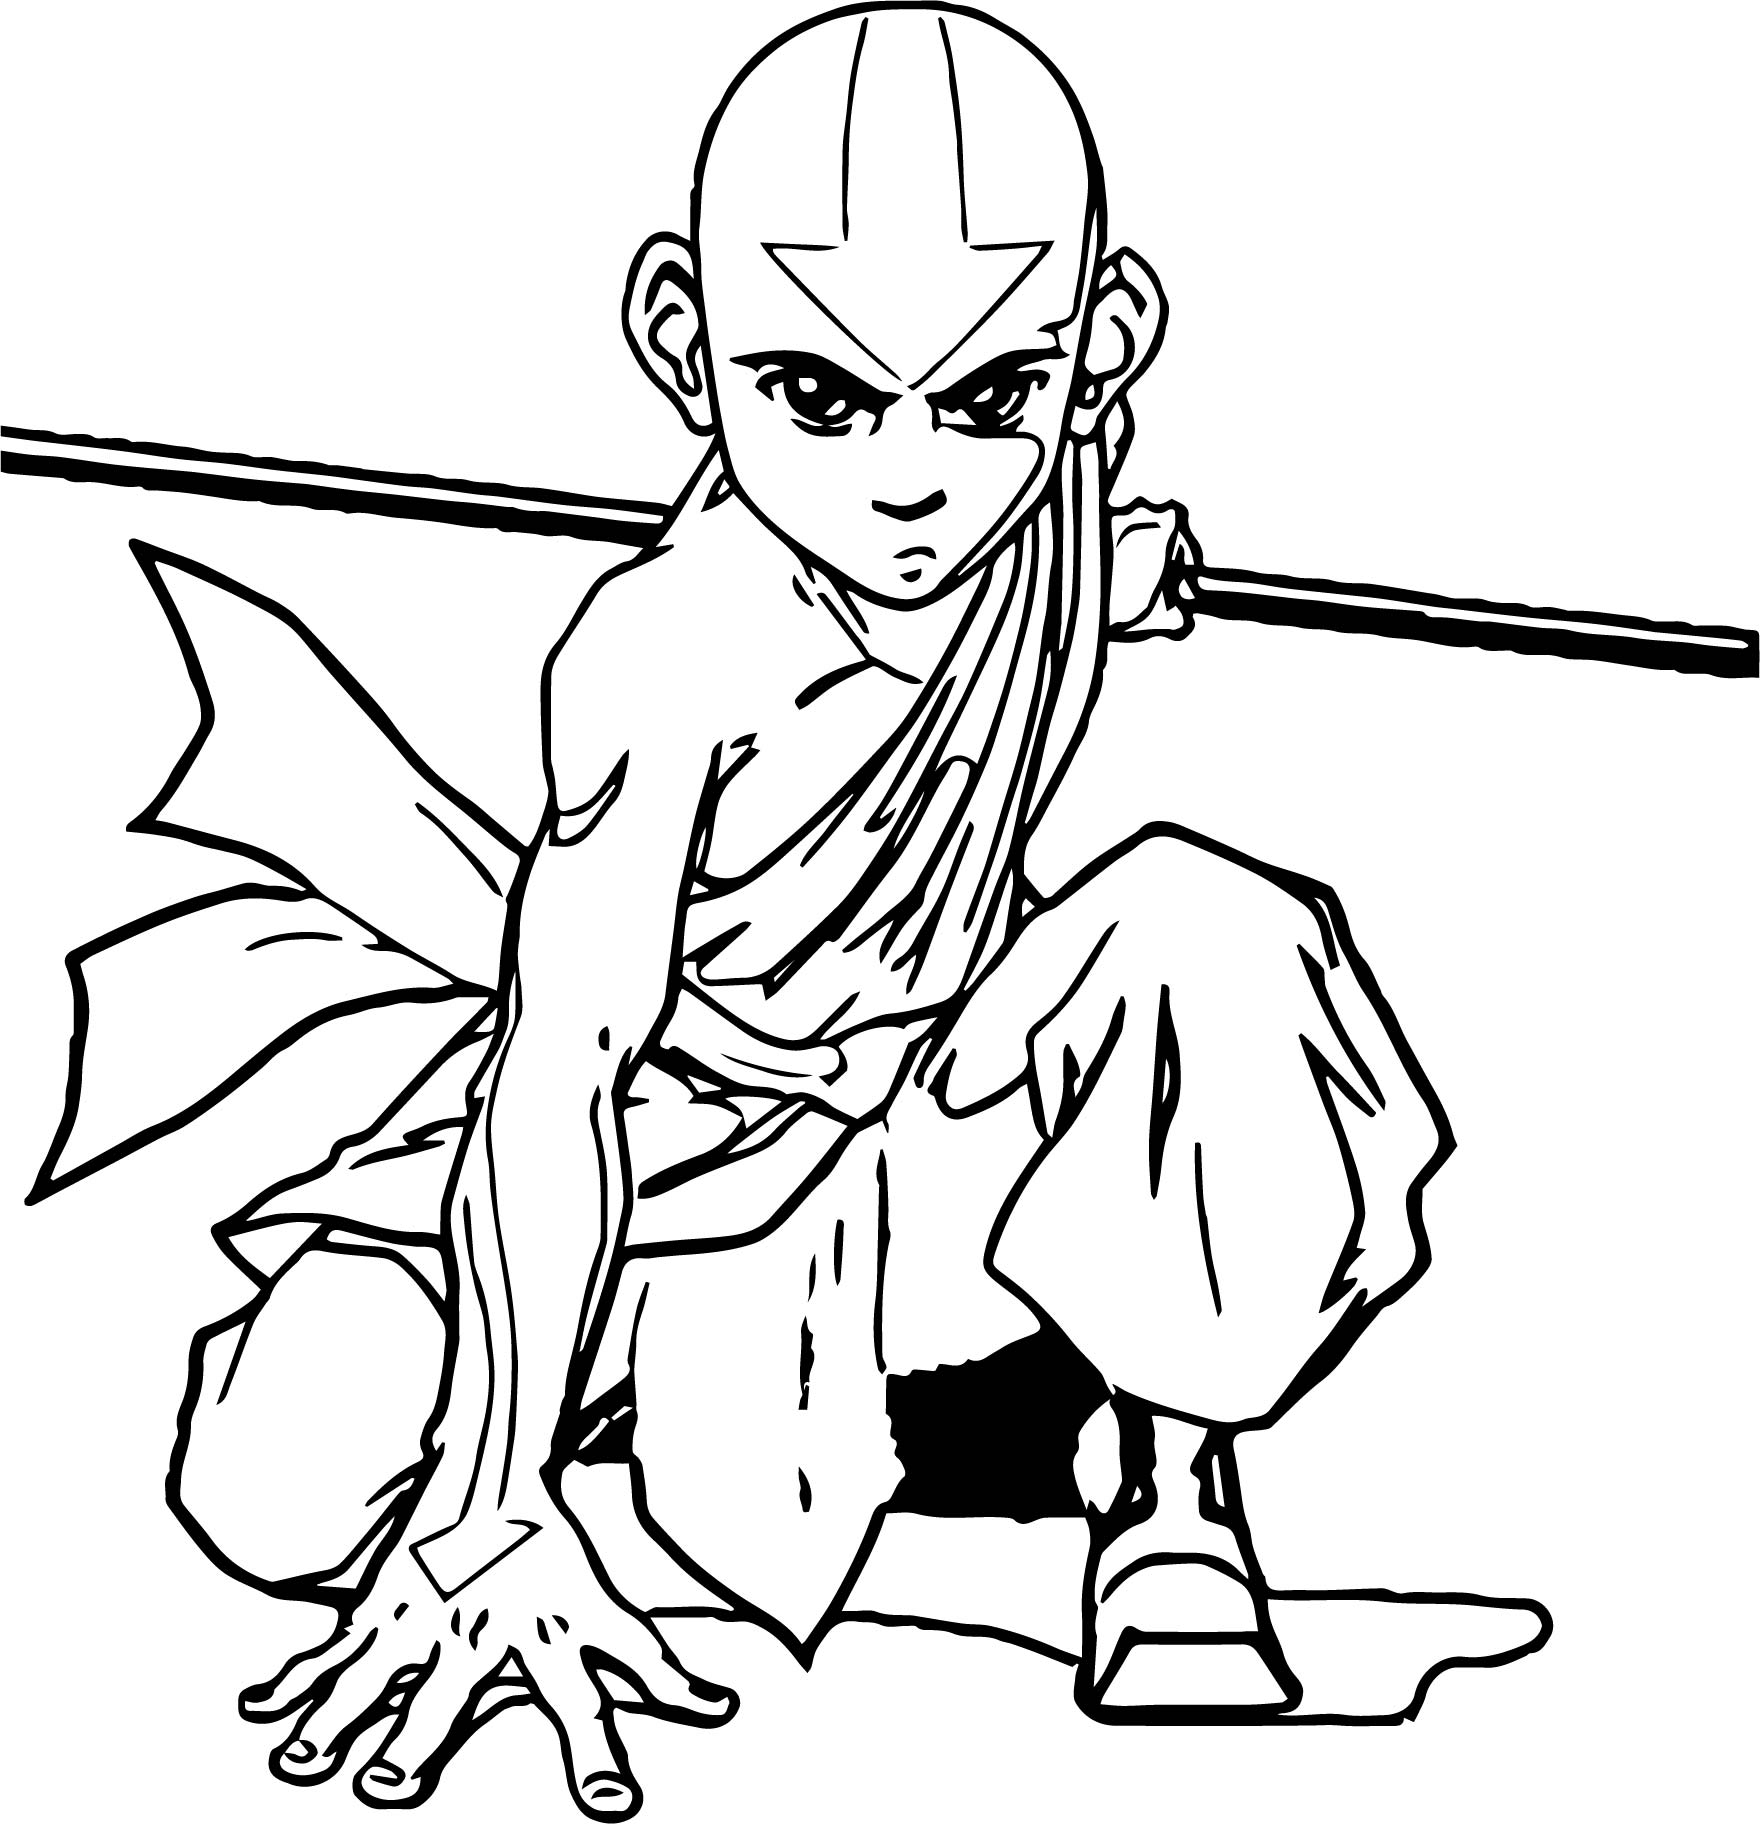 Aang Official Avatar Aang Coloring Page